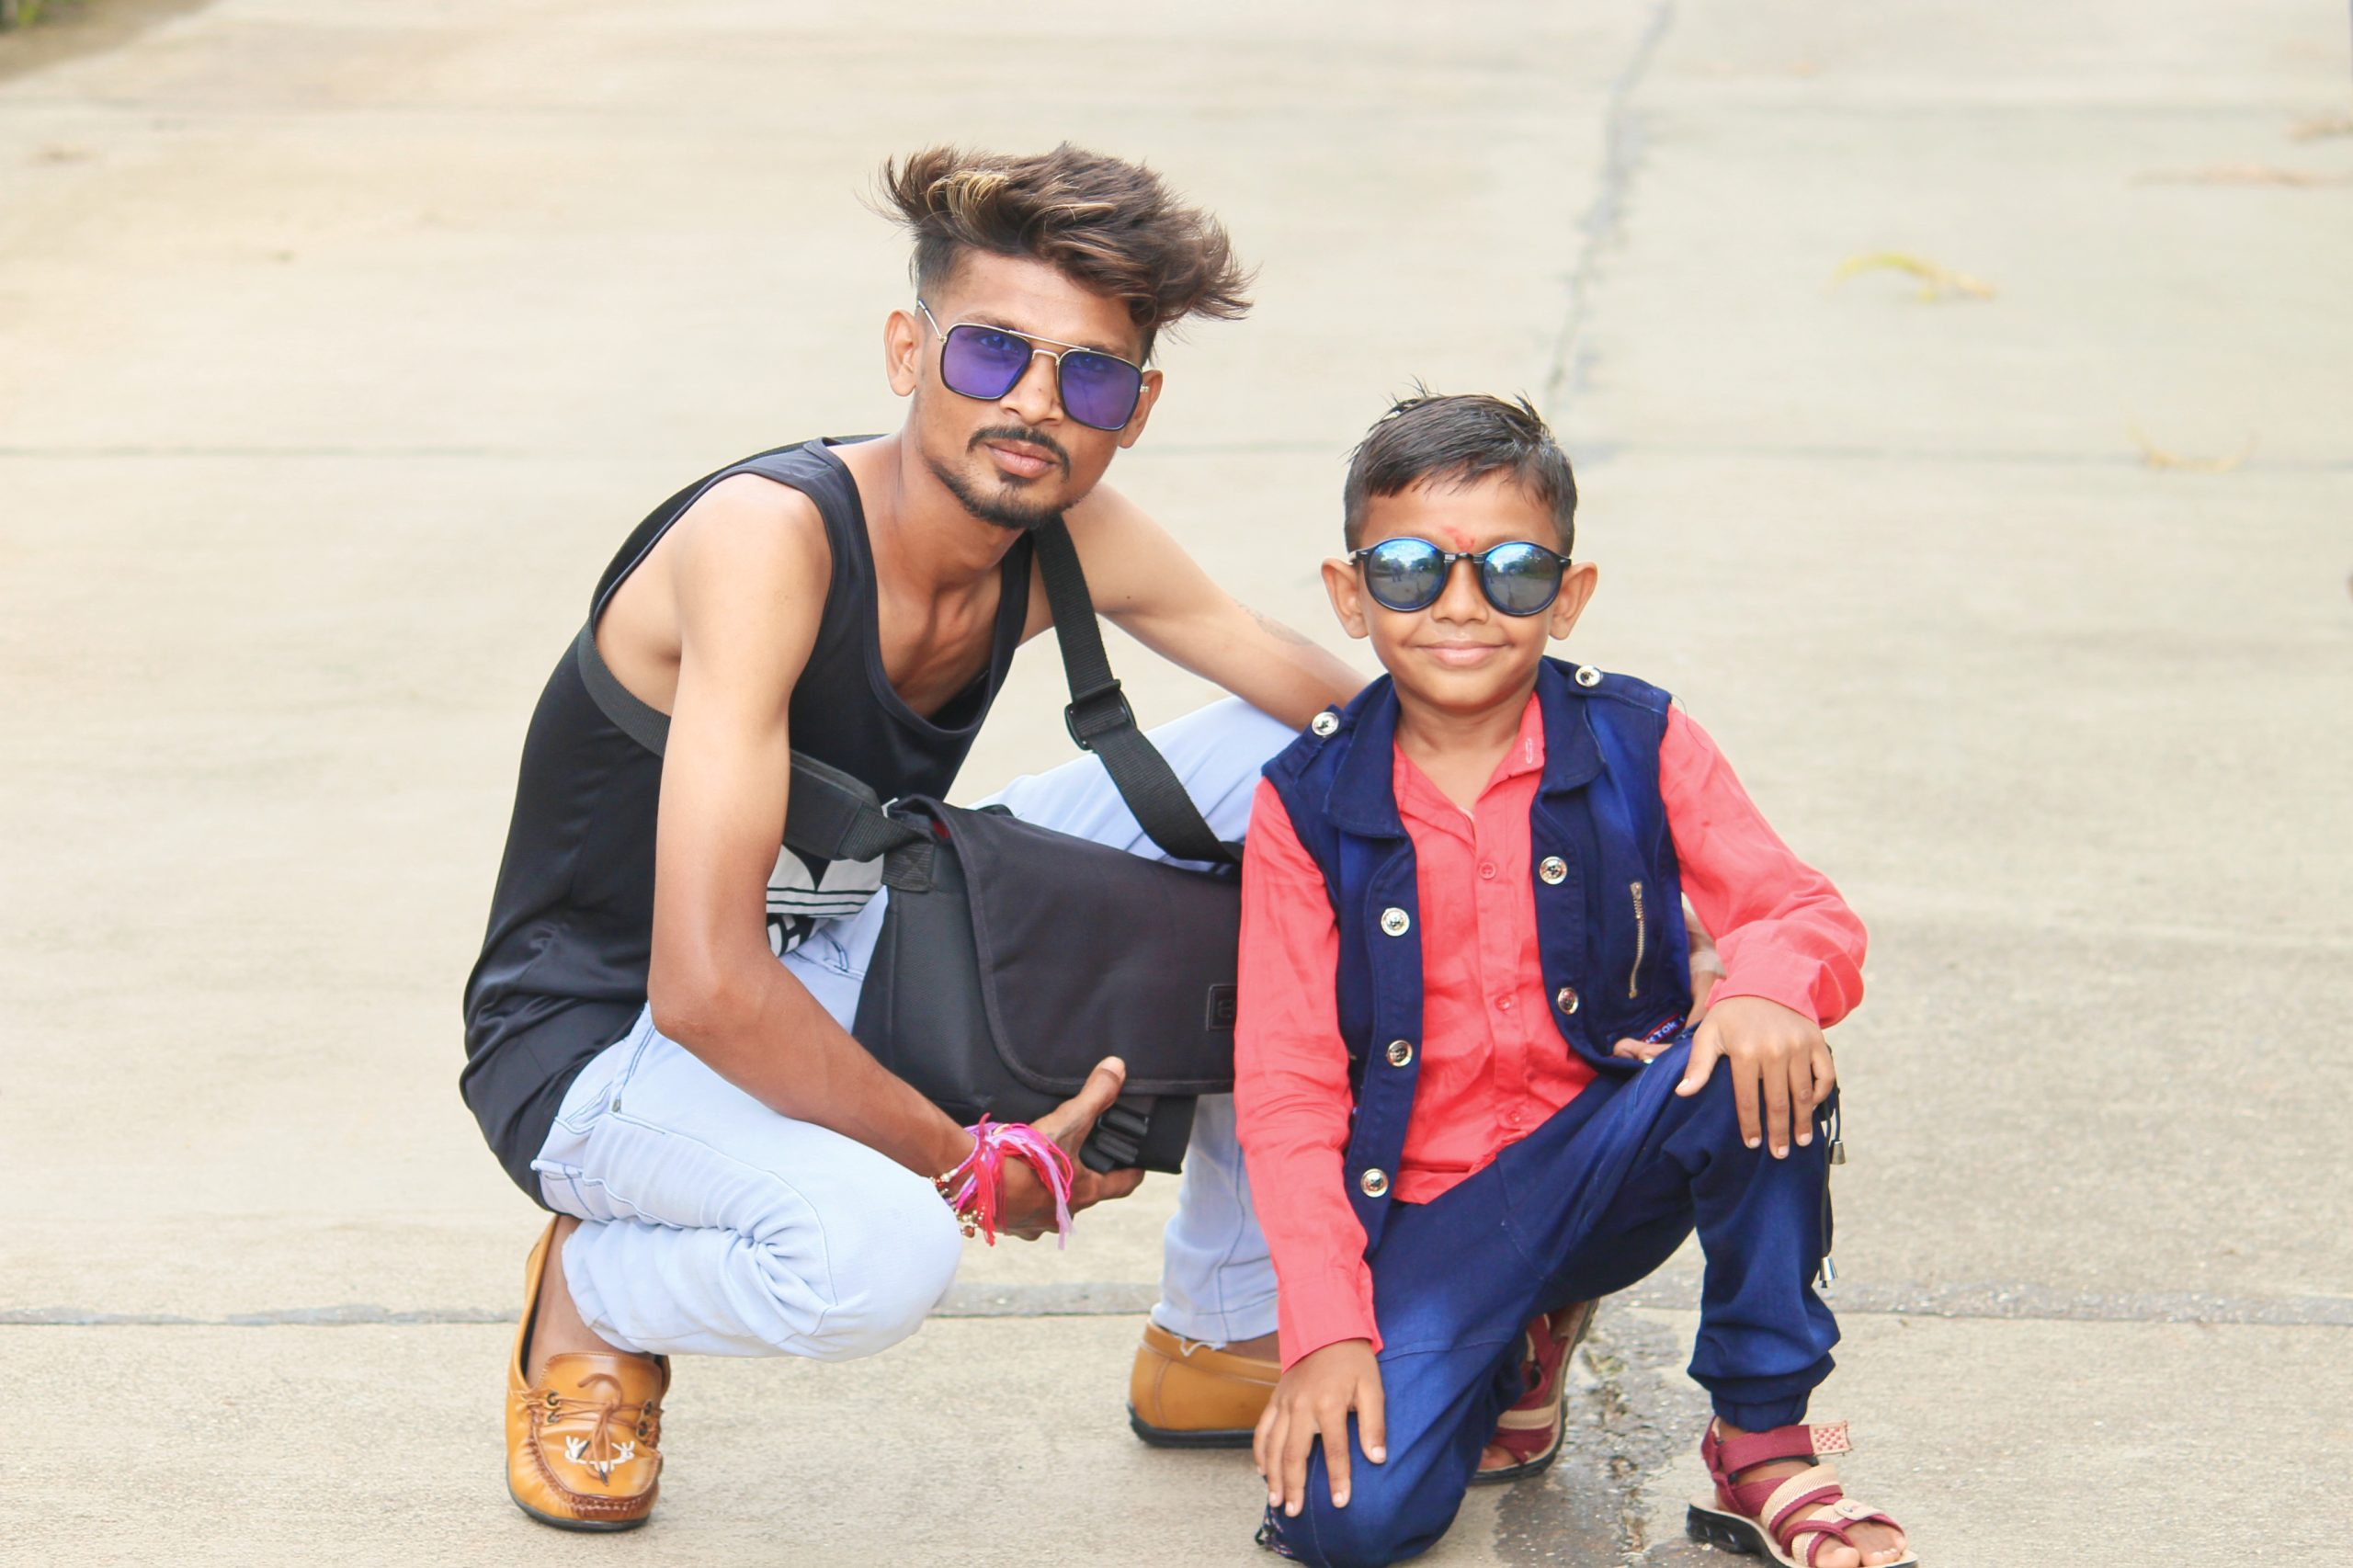 Two boys posing while wearing sunglasses